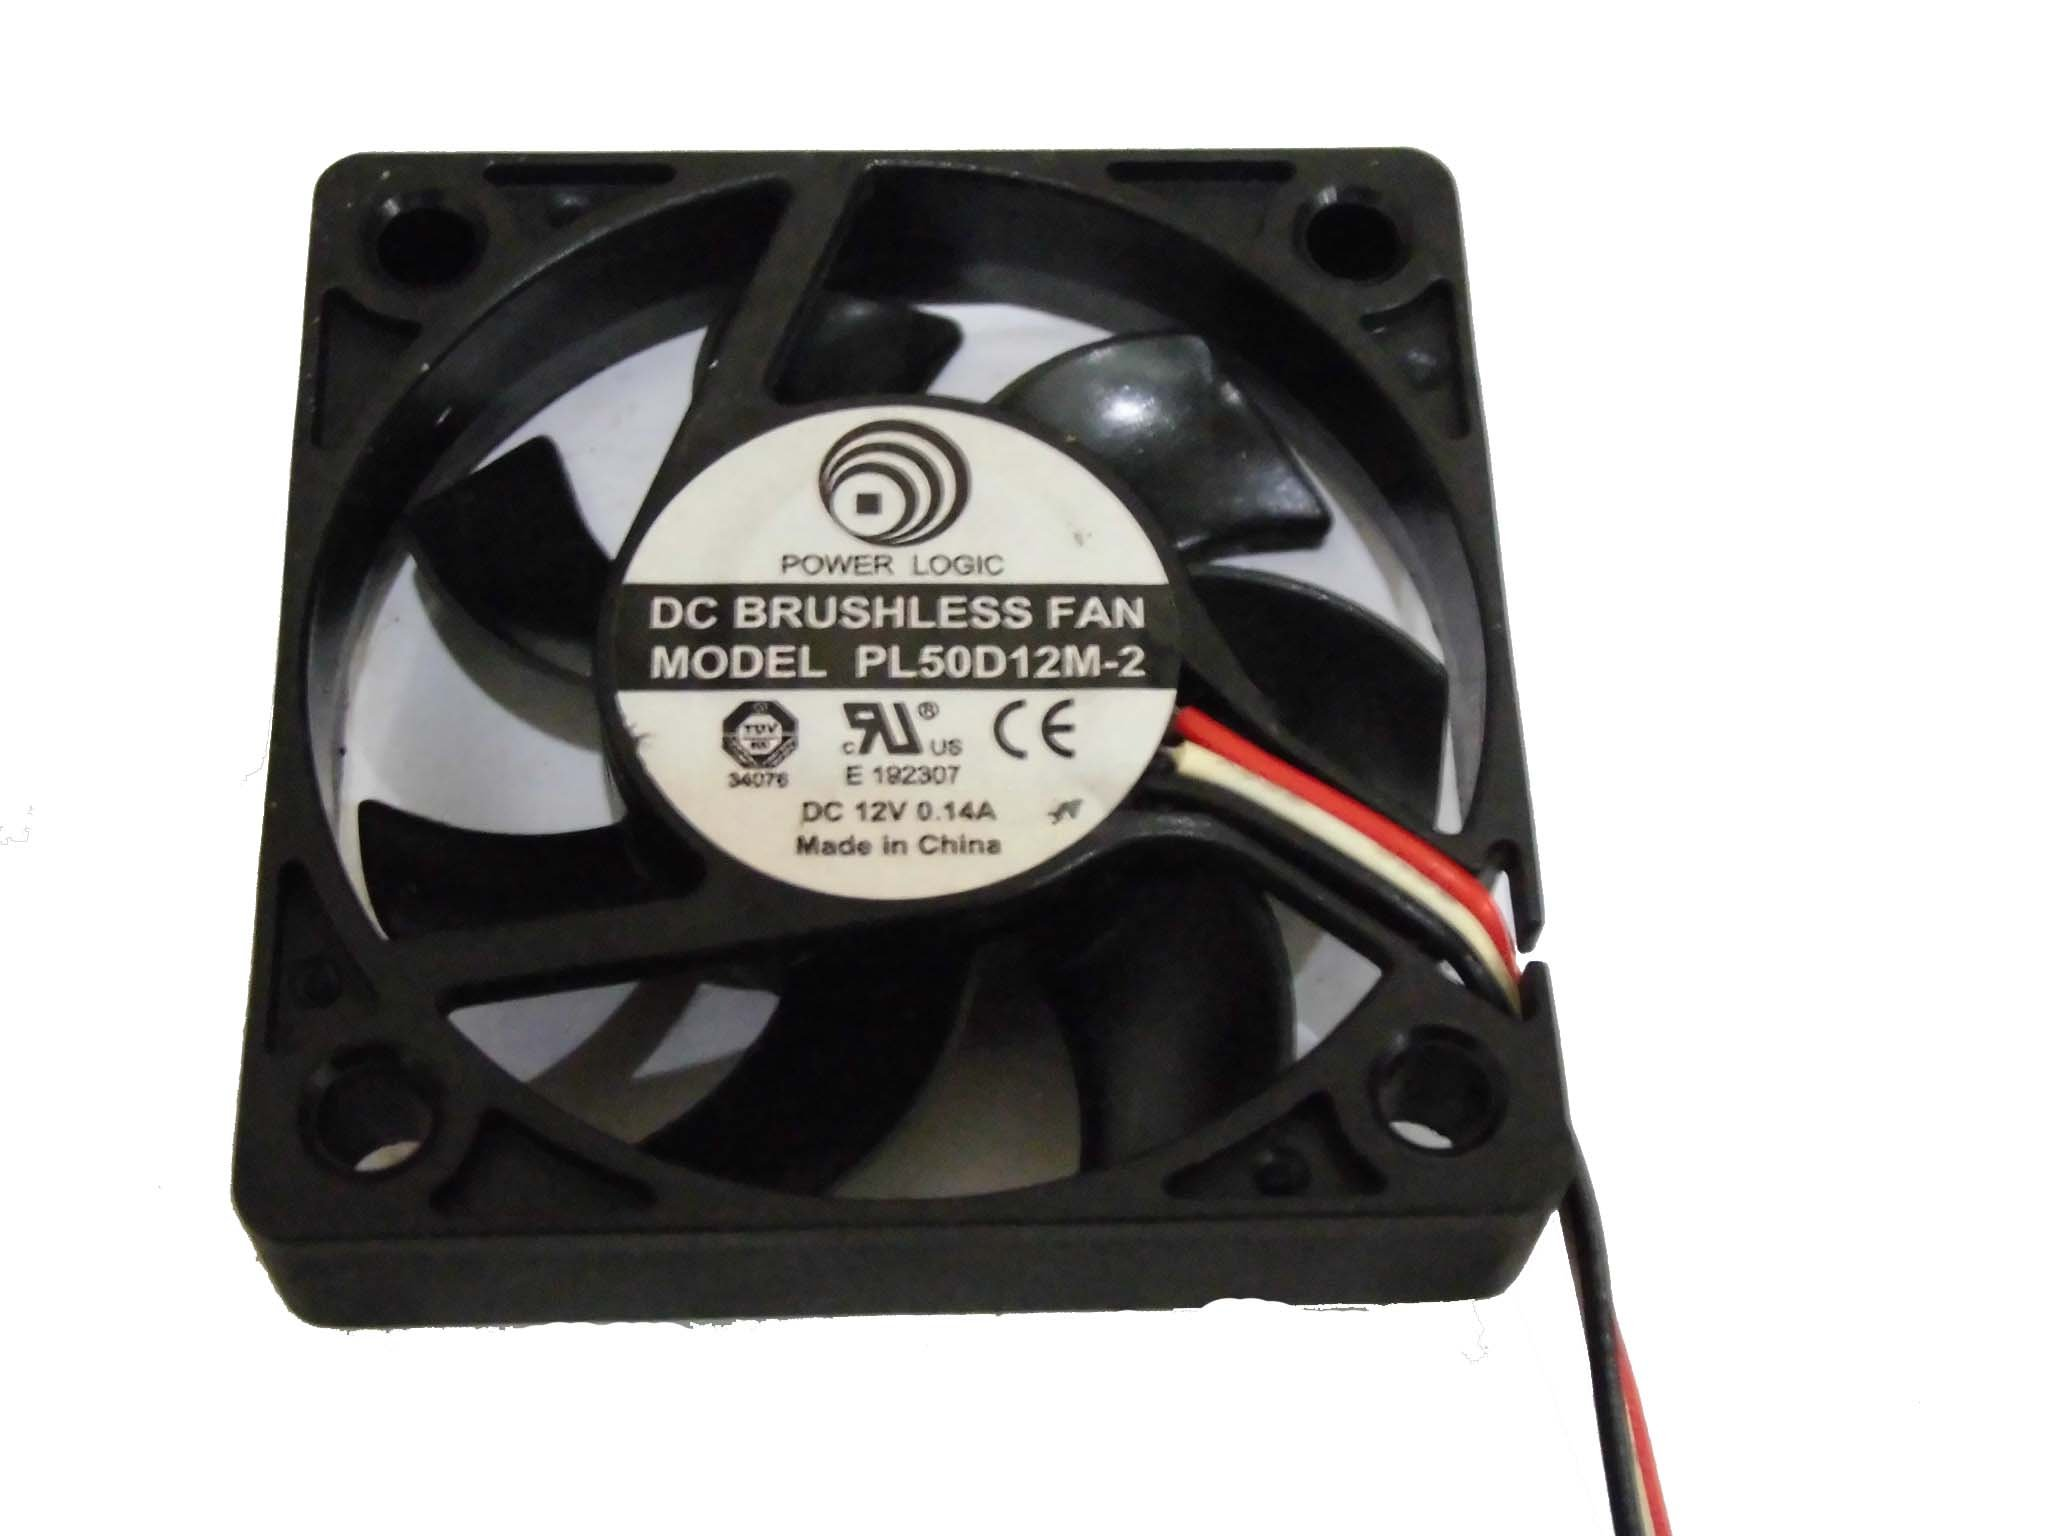 Power Logic 5010 PL50D12M-2 12V 0.14A 3Wire Cooling Fan by General (Image #1)